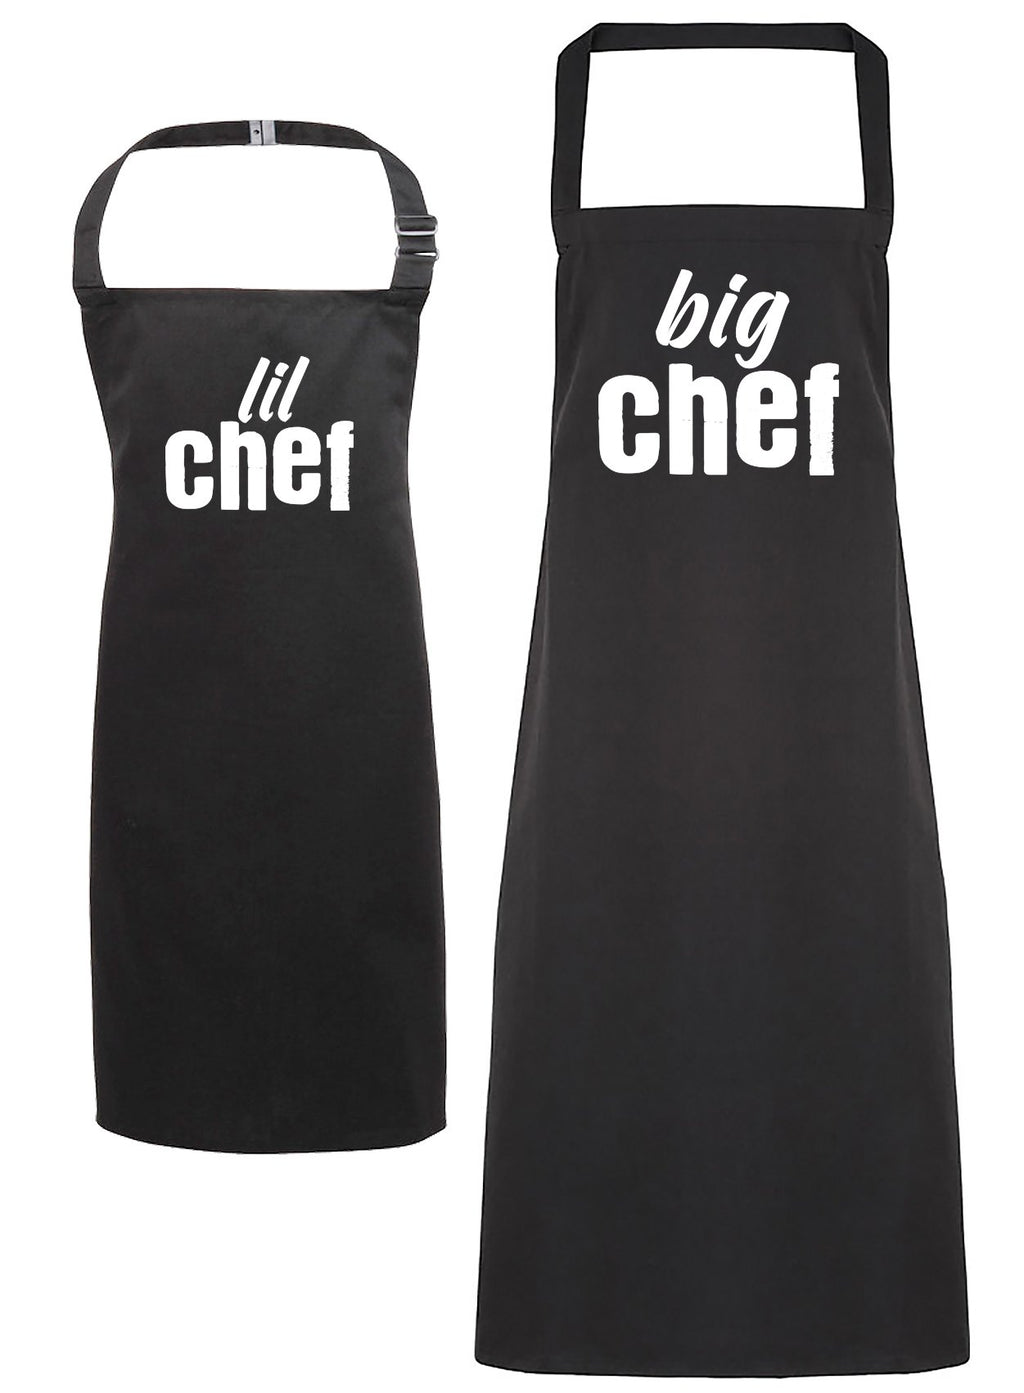 Big Chef & Lil Chef - Adult & Kids Apron Set